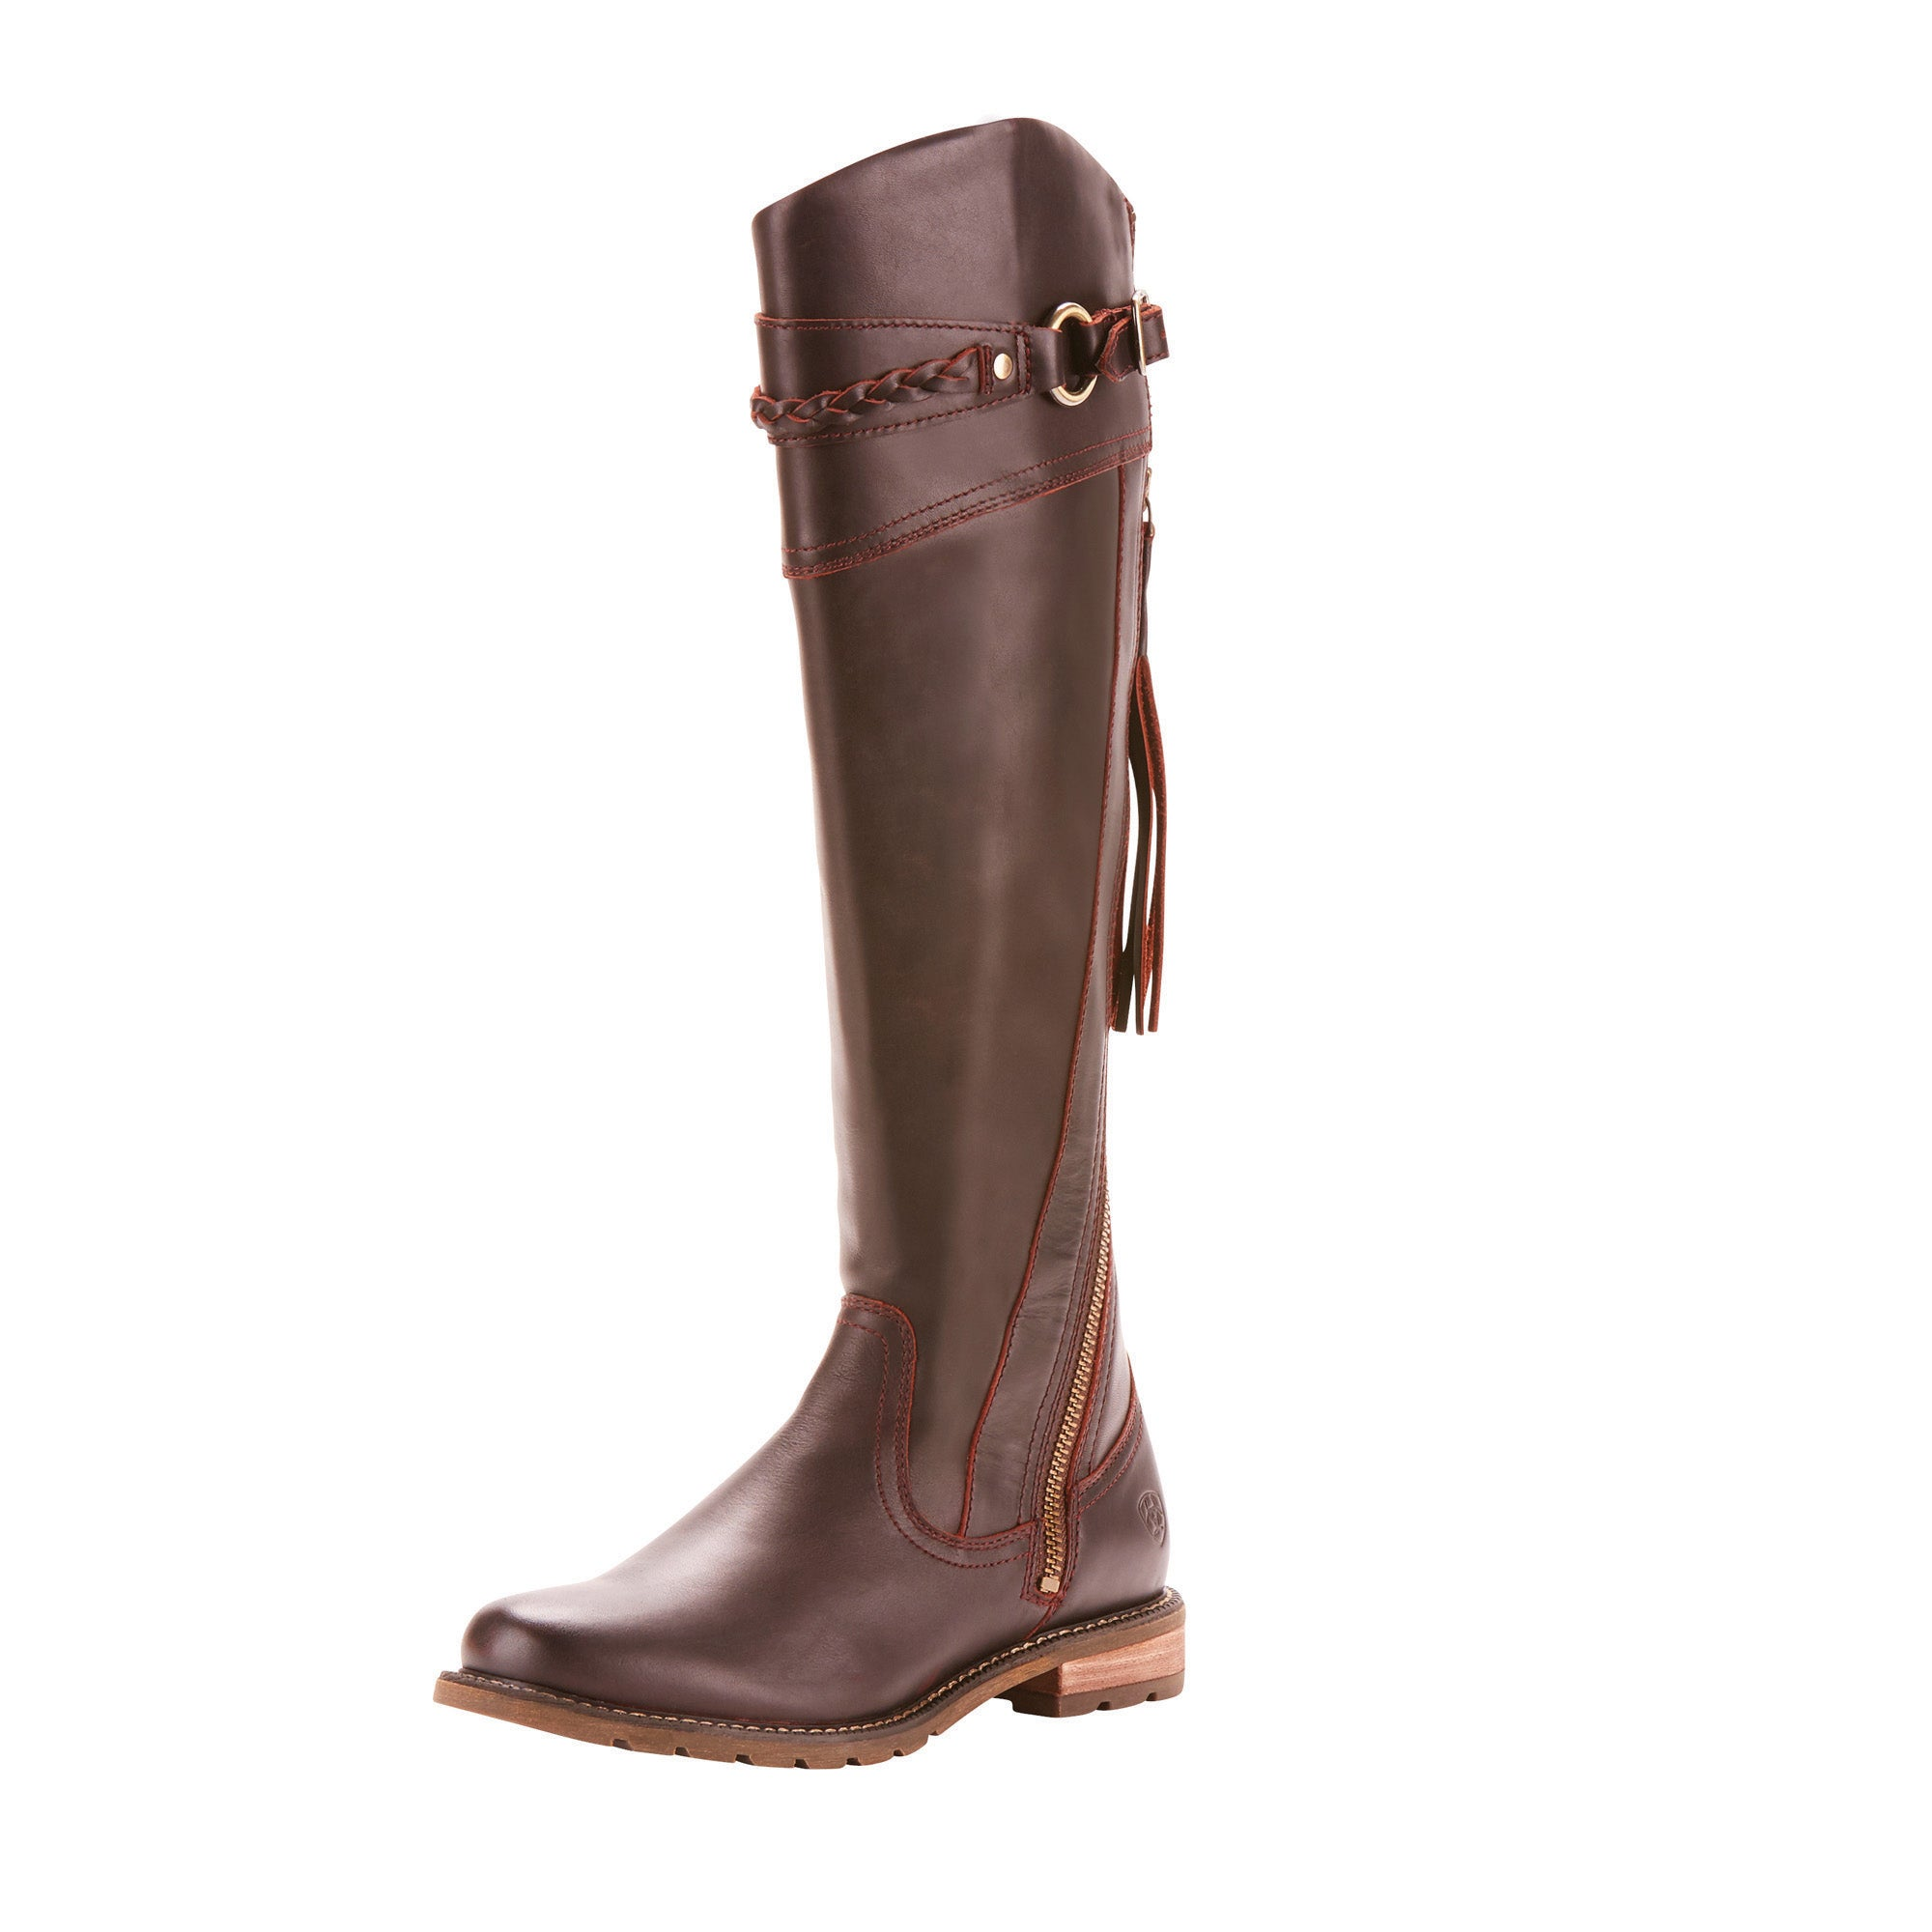 2f48e62f888 Ariat Alora Women's Country Boots - Cordovan | Country Attire